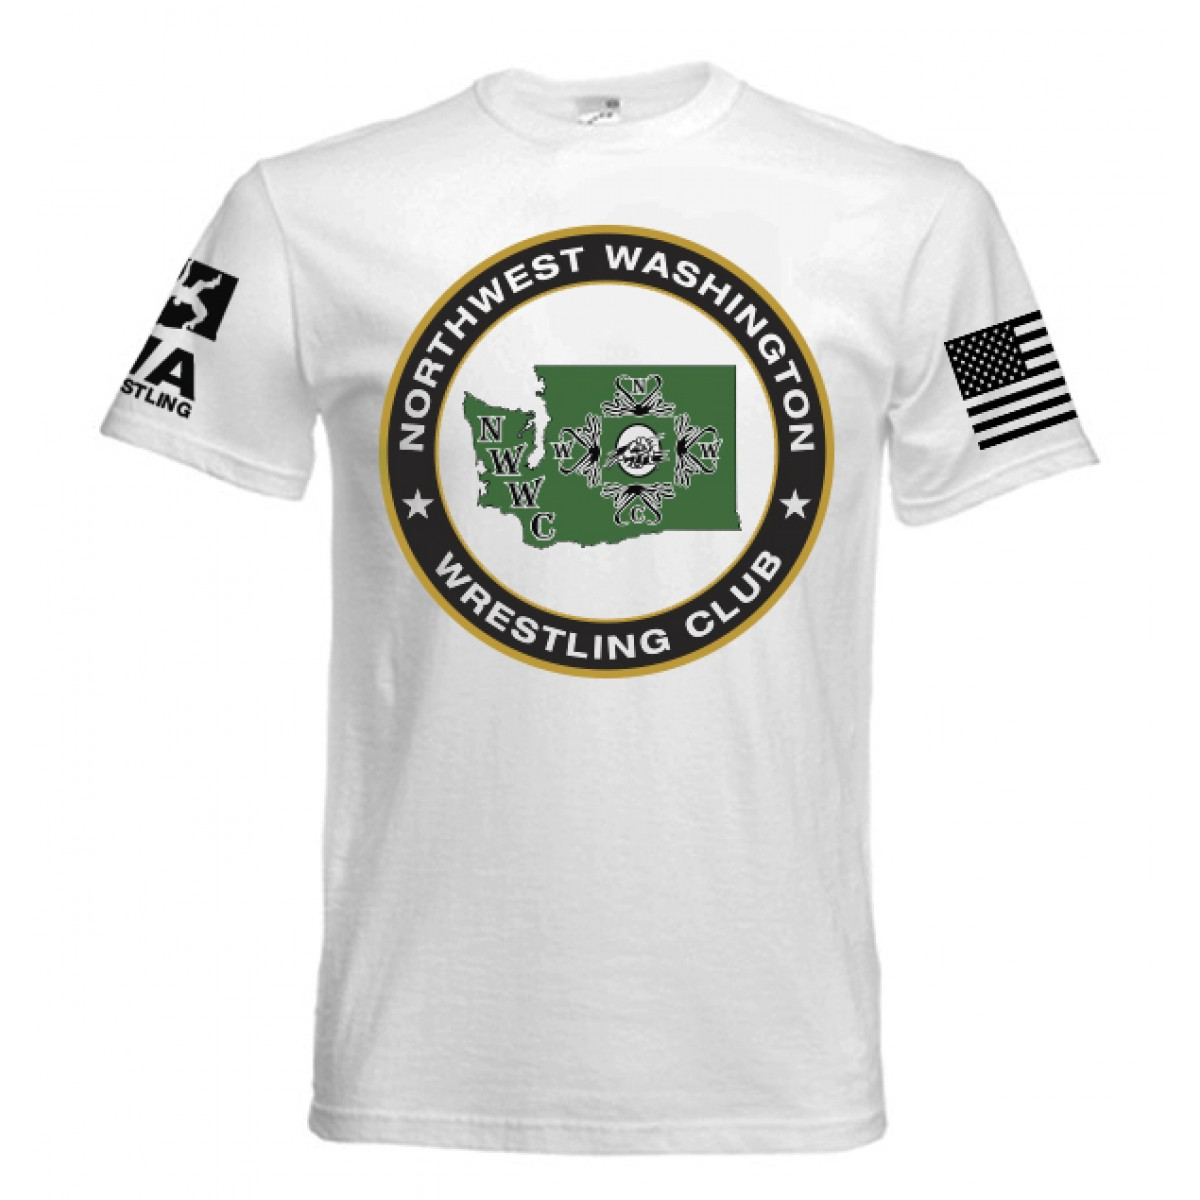 NWWC White T-shirt Green Logo-White-XL